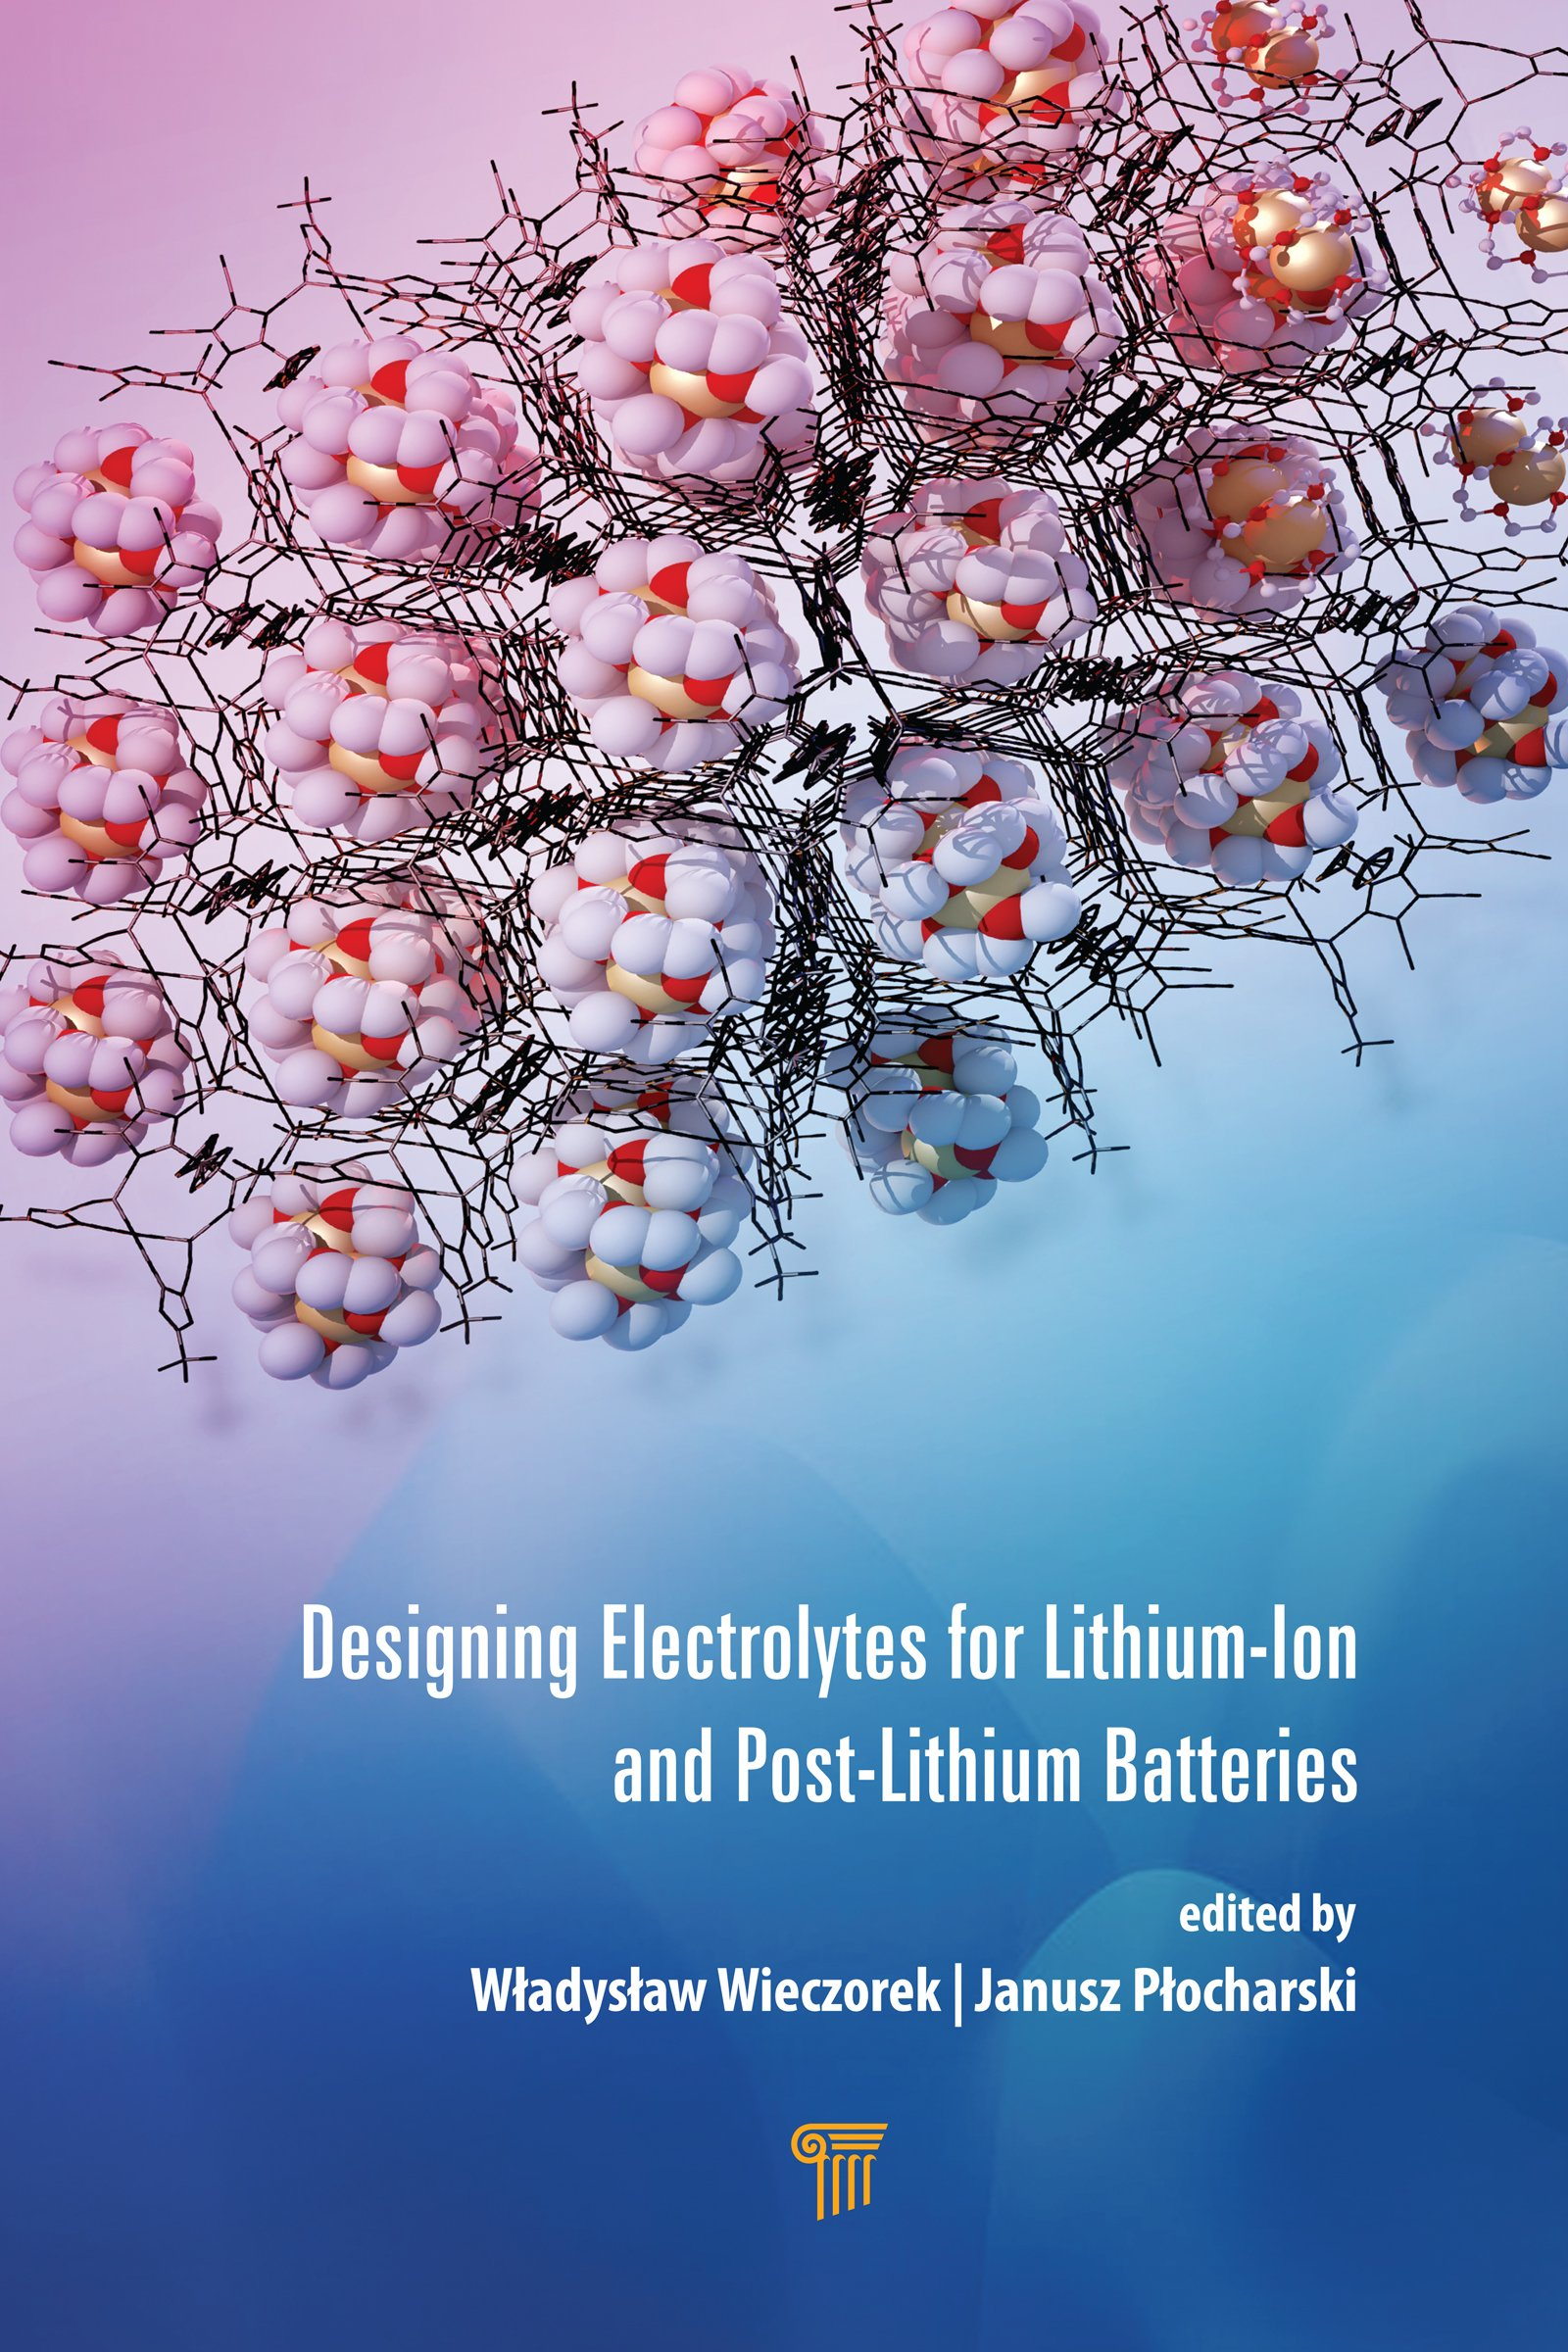 Designing Electrolytes for Lithium-Ion and Post-Lithium Batteries